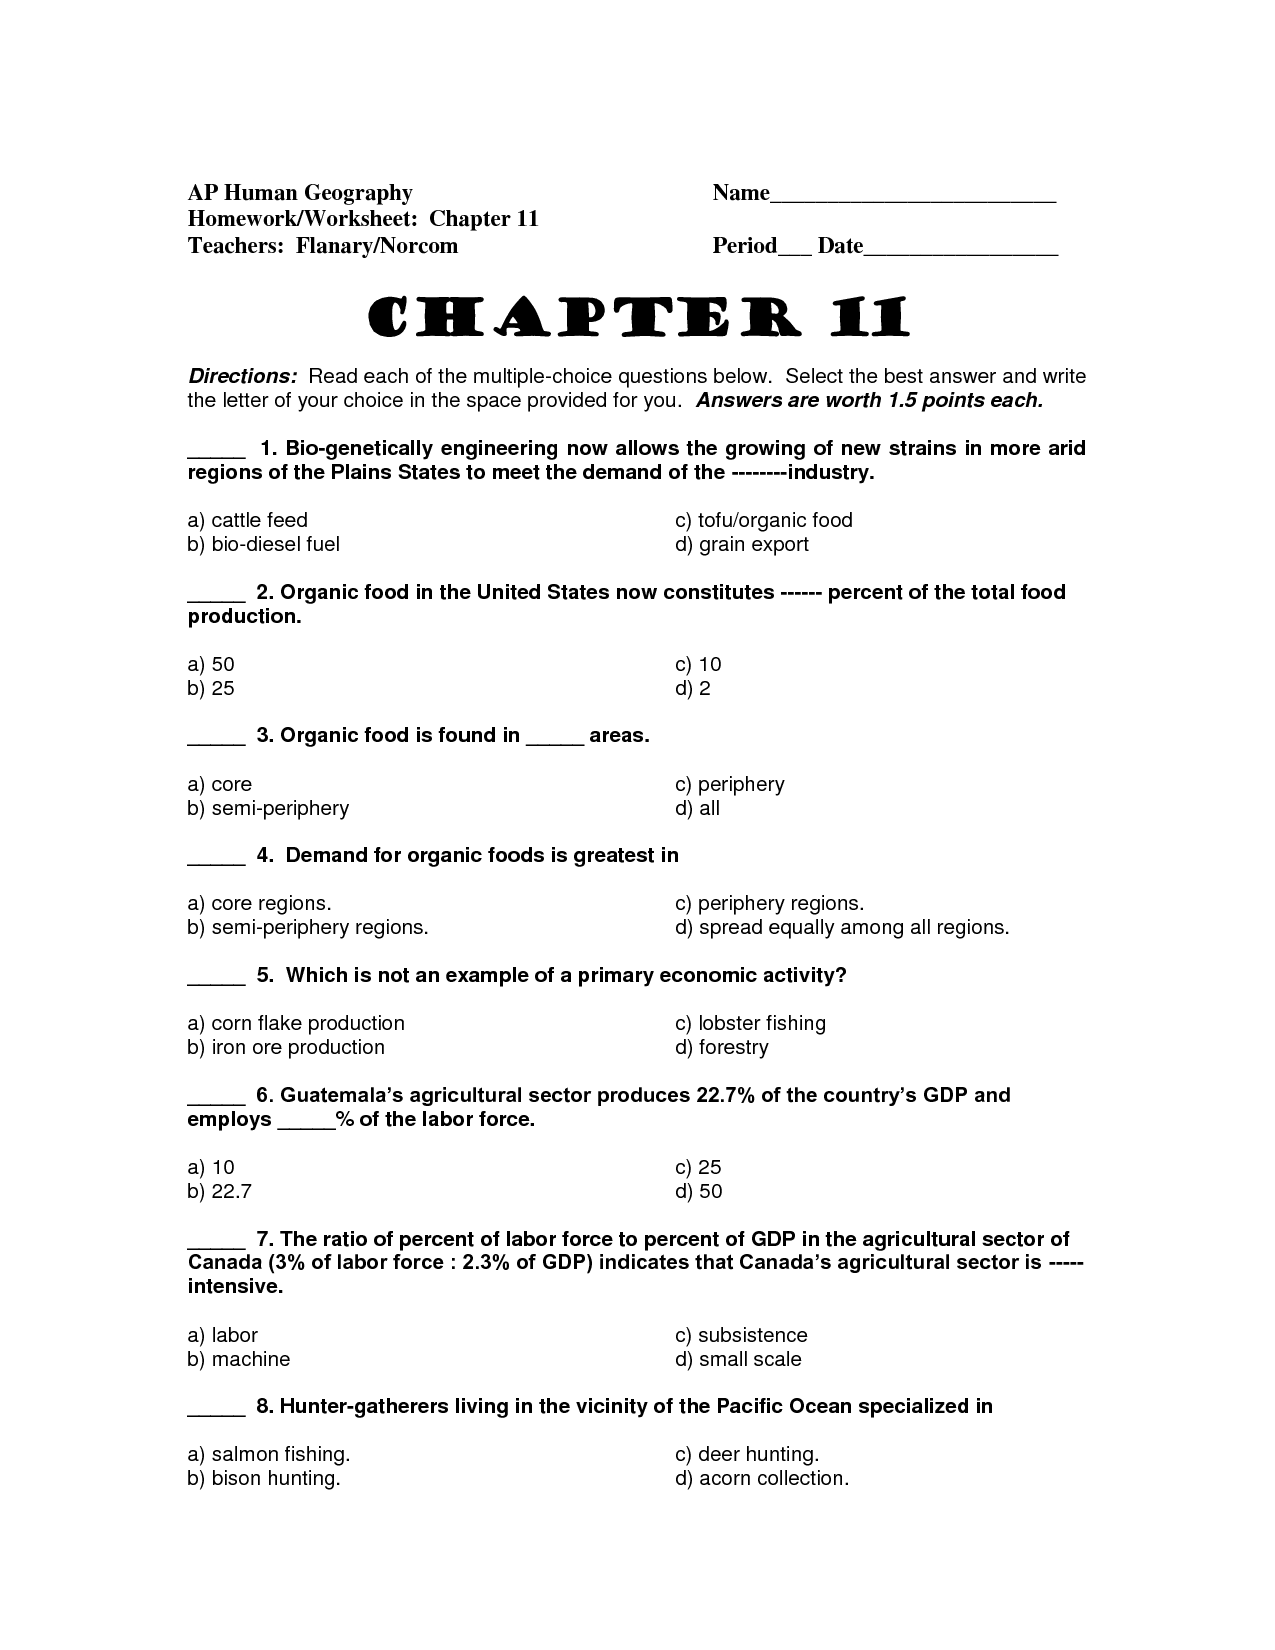 20 Best Images Of Ap Human Geography Chapter 7 Worksheet